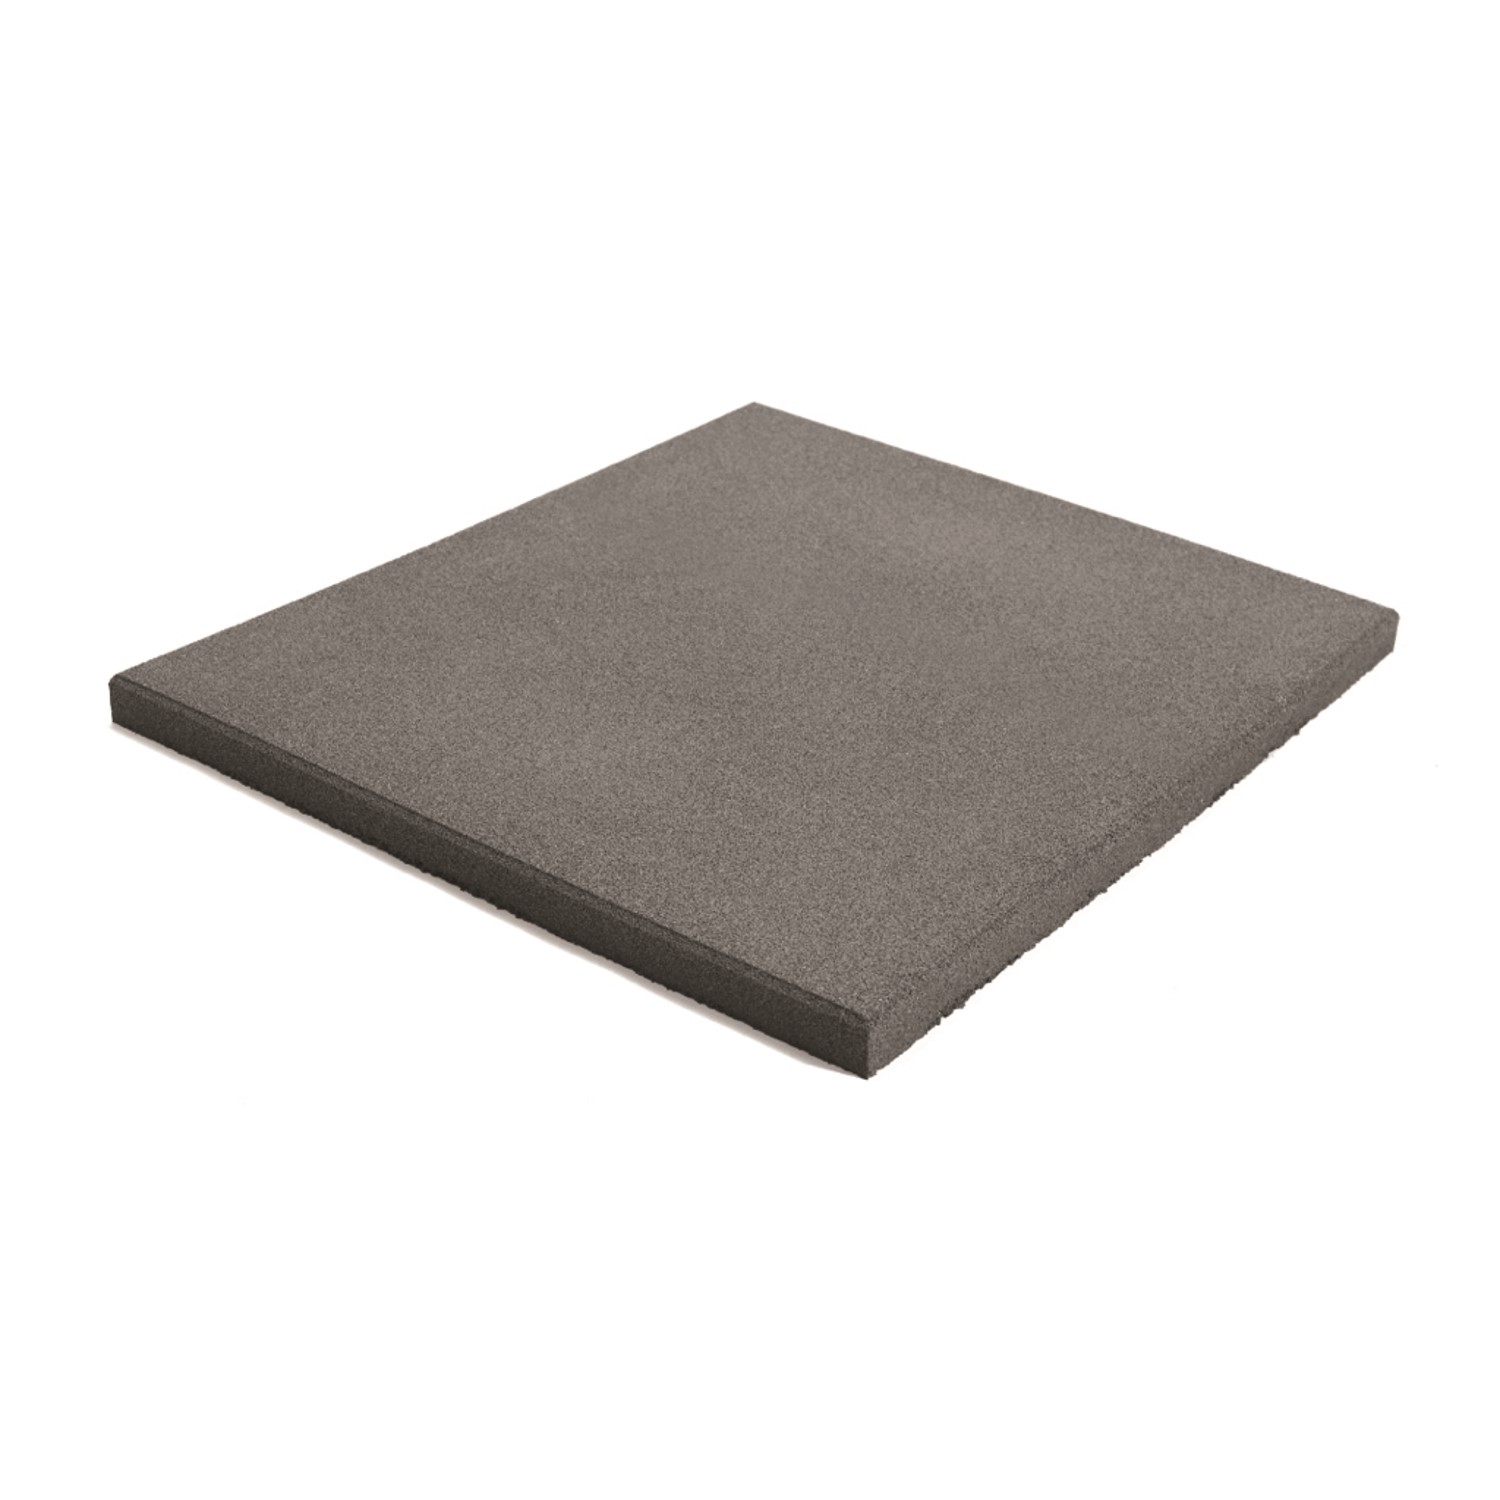 Jordan Activ Flooring - 15mm (Grey)